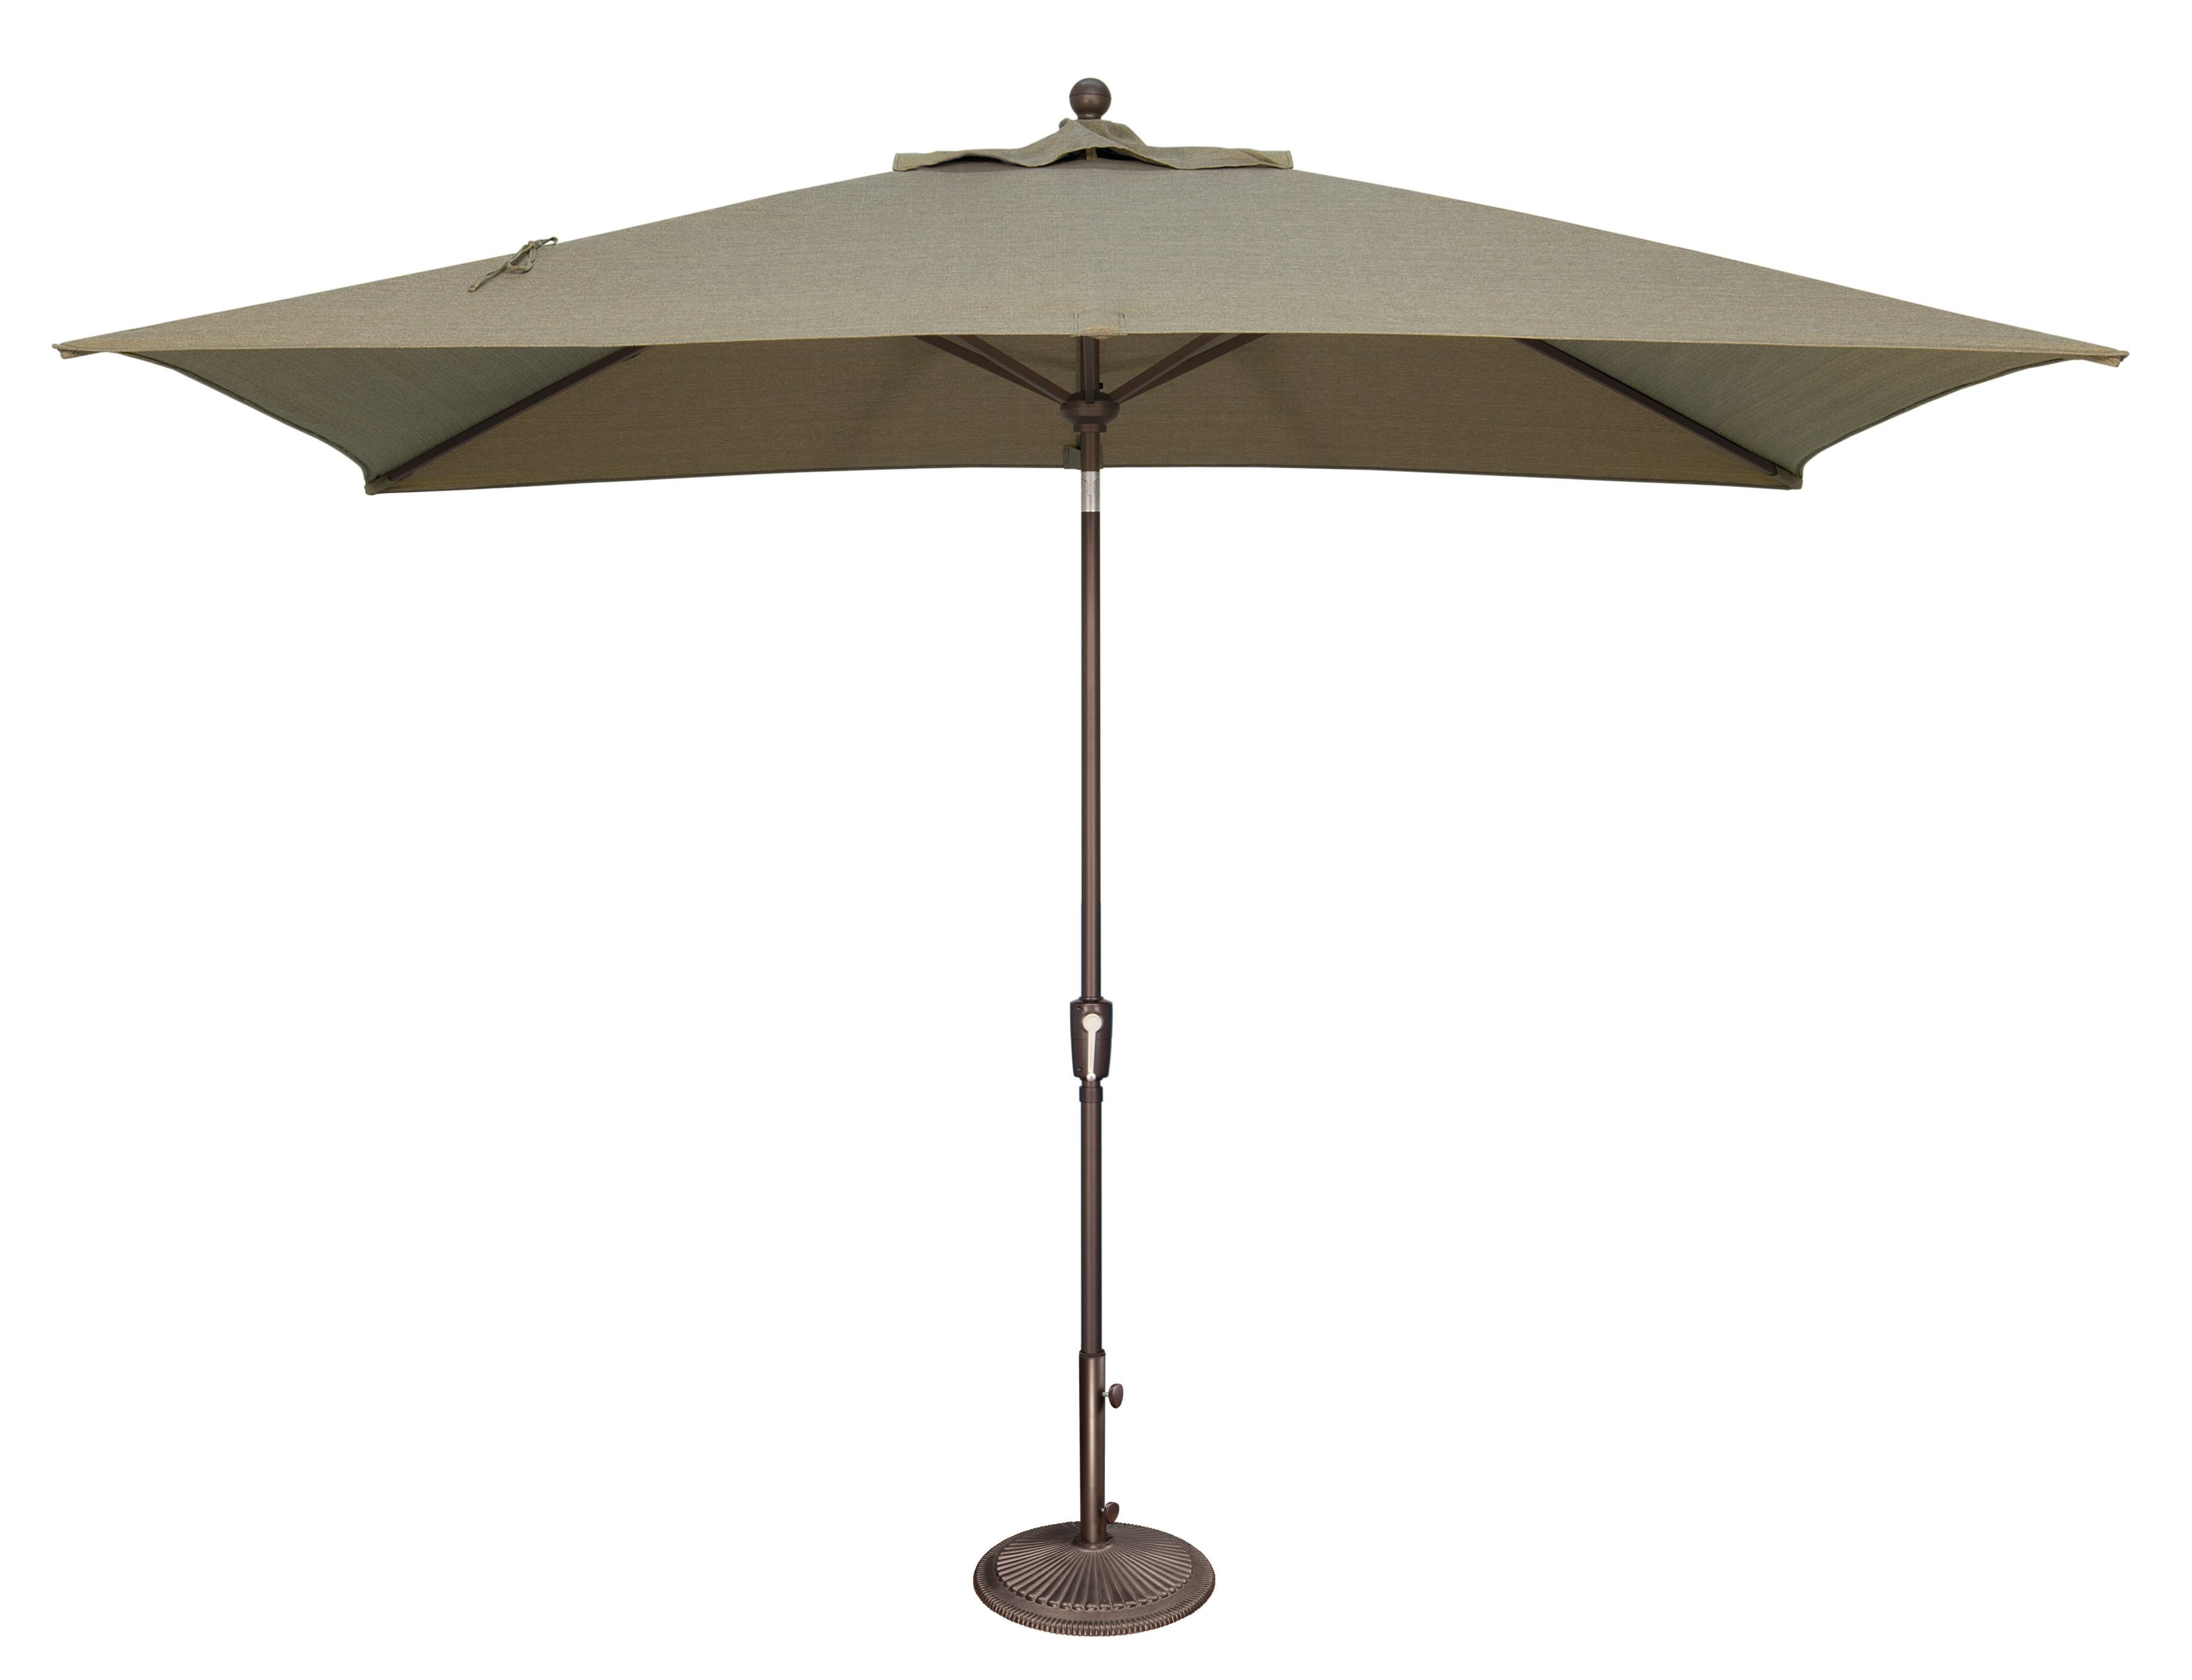 Best And Newest Launceston 10' X 6.5' Rectangular Market Umbrella Intended For Carina Market Umbrellas (Gallery 11 of 20)